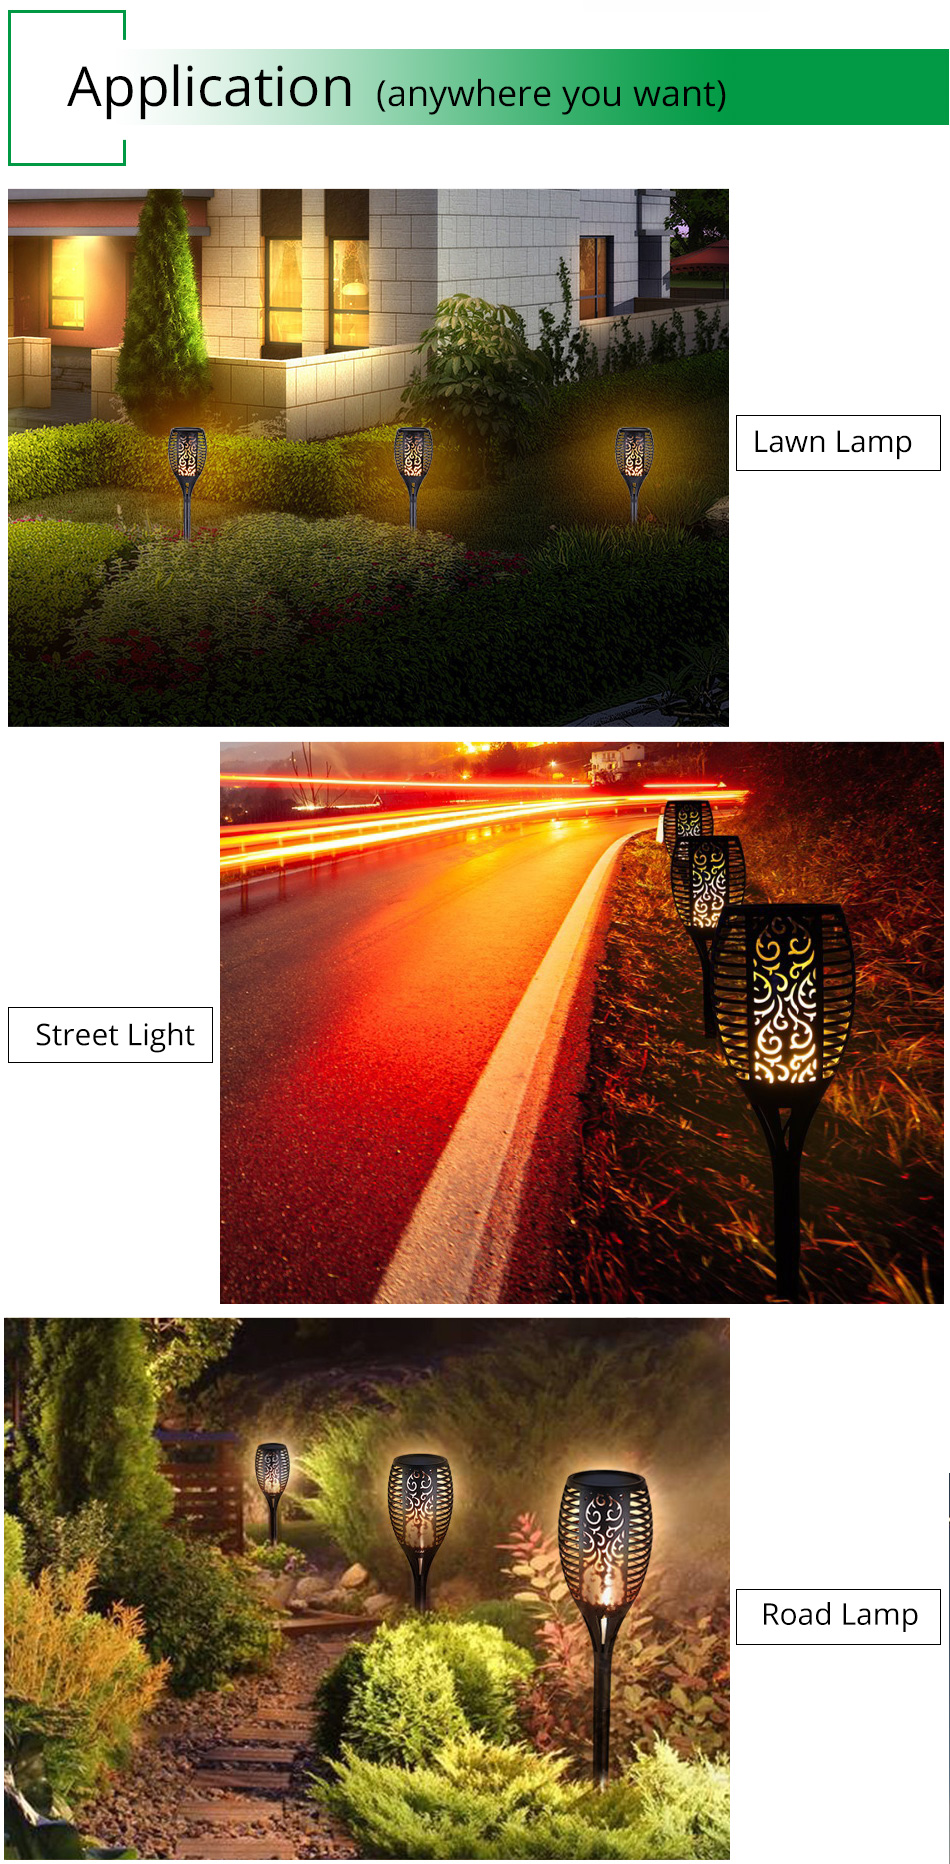 LED Flame Lamp Solar Waterproof Lawn Light Dancing Flickering Torch Lights Garden Outdoor Landscape Decorative Path Lighting (12)